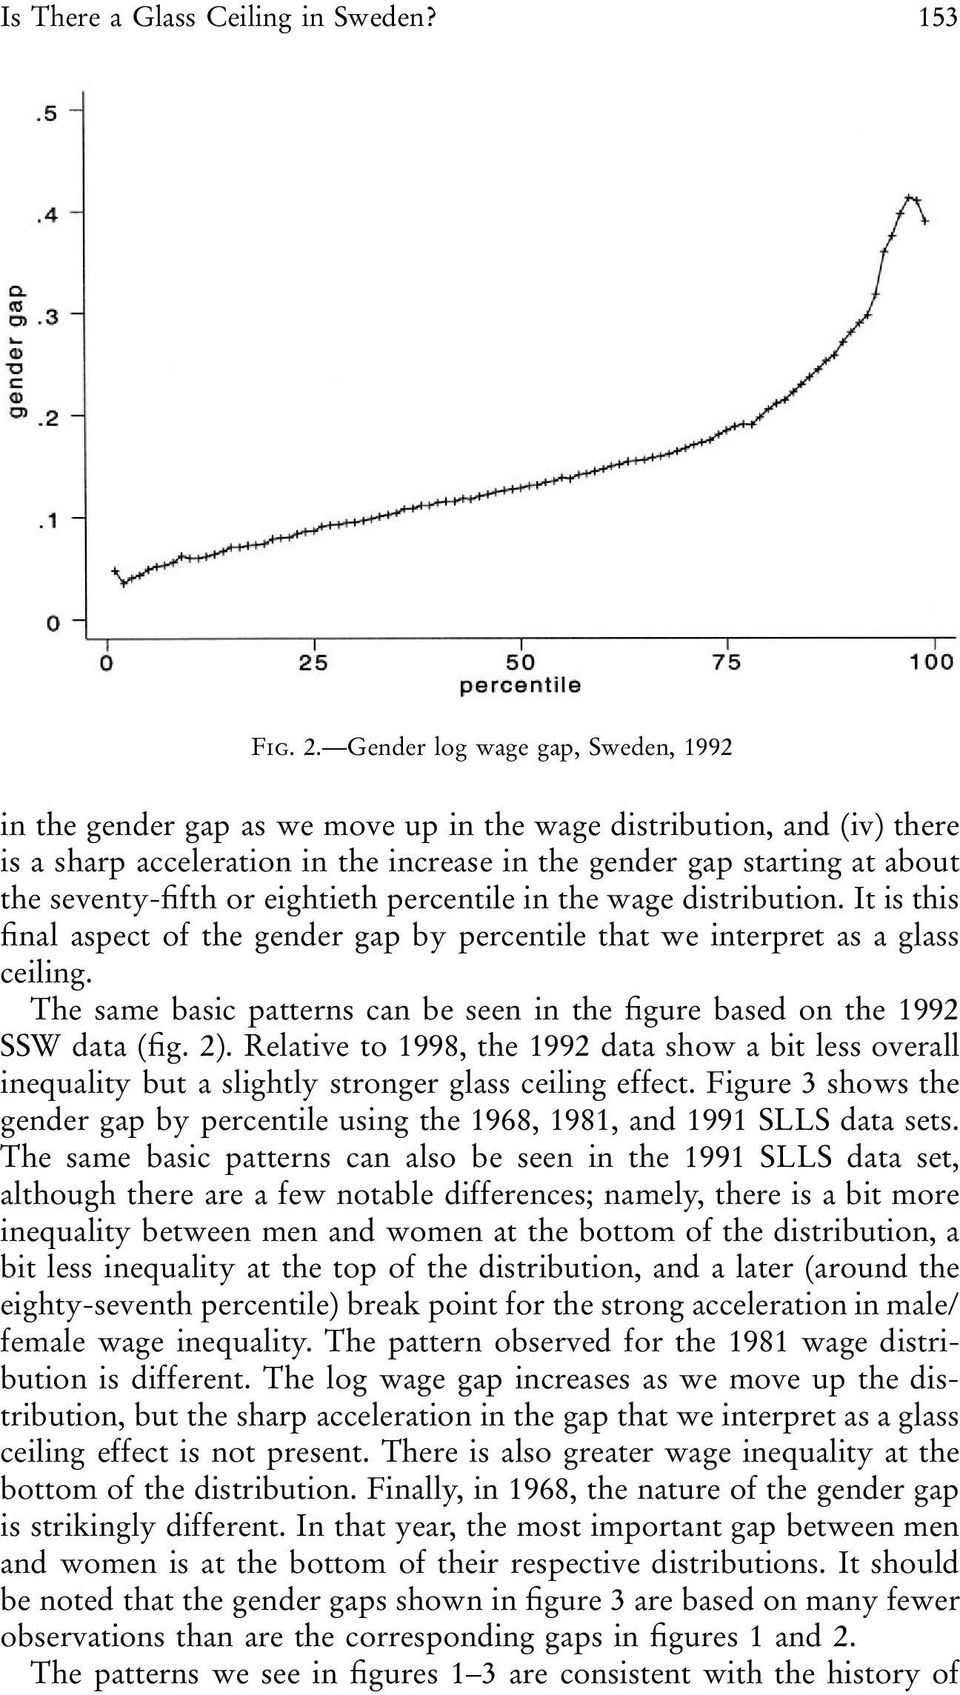 seventy-fifth or eightieth percentile in the wage distribution. It is this final aspect of the gender gap by percentile that we interpret as a glass ceiling.